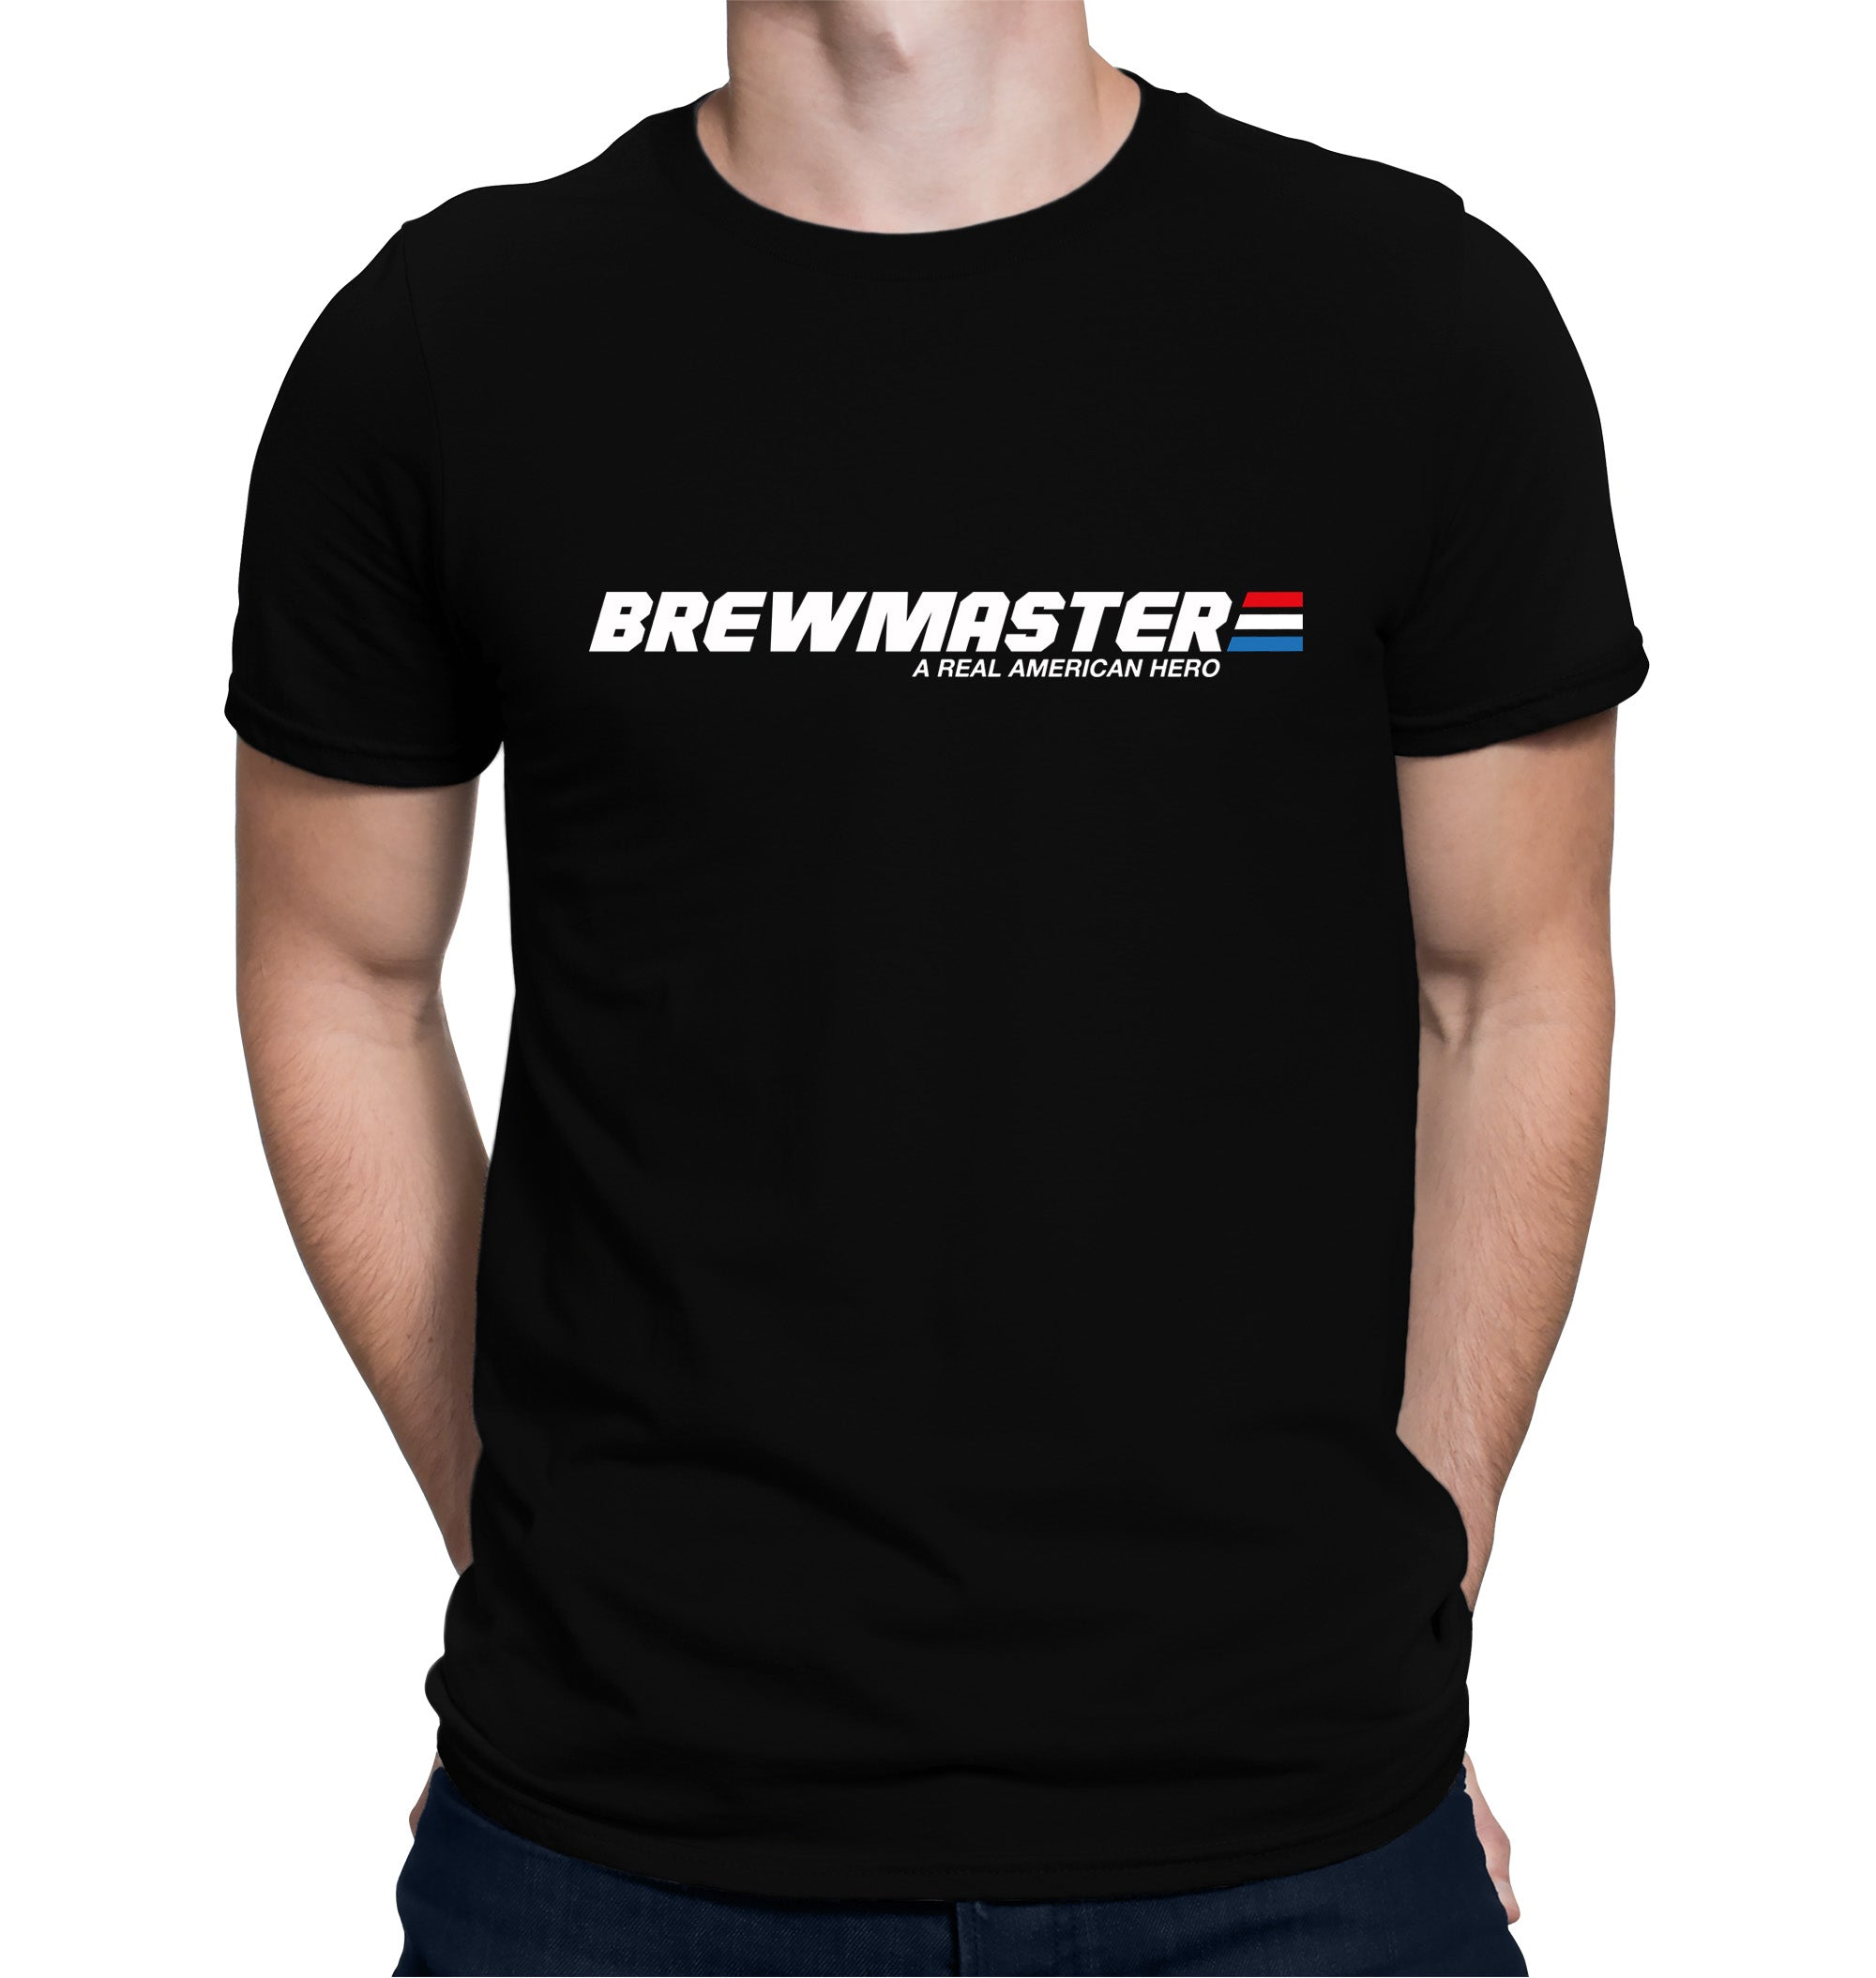 Brewmaster a Real American Hero T-Shirt on Model